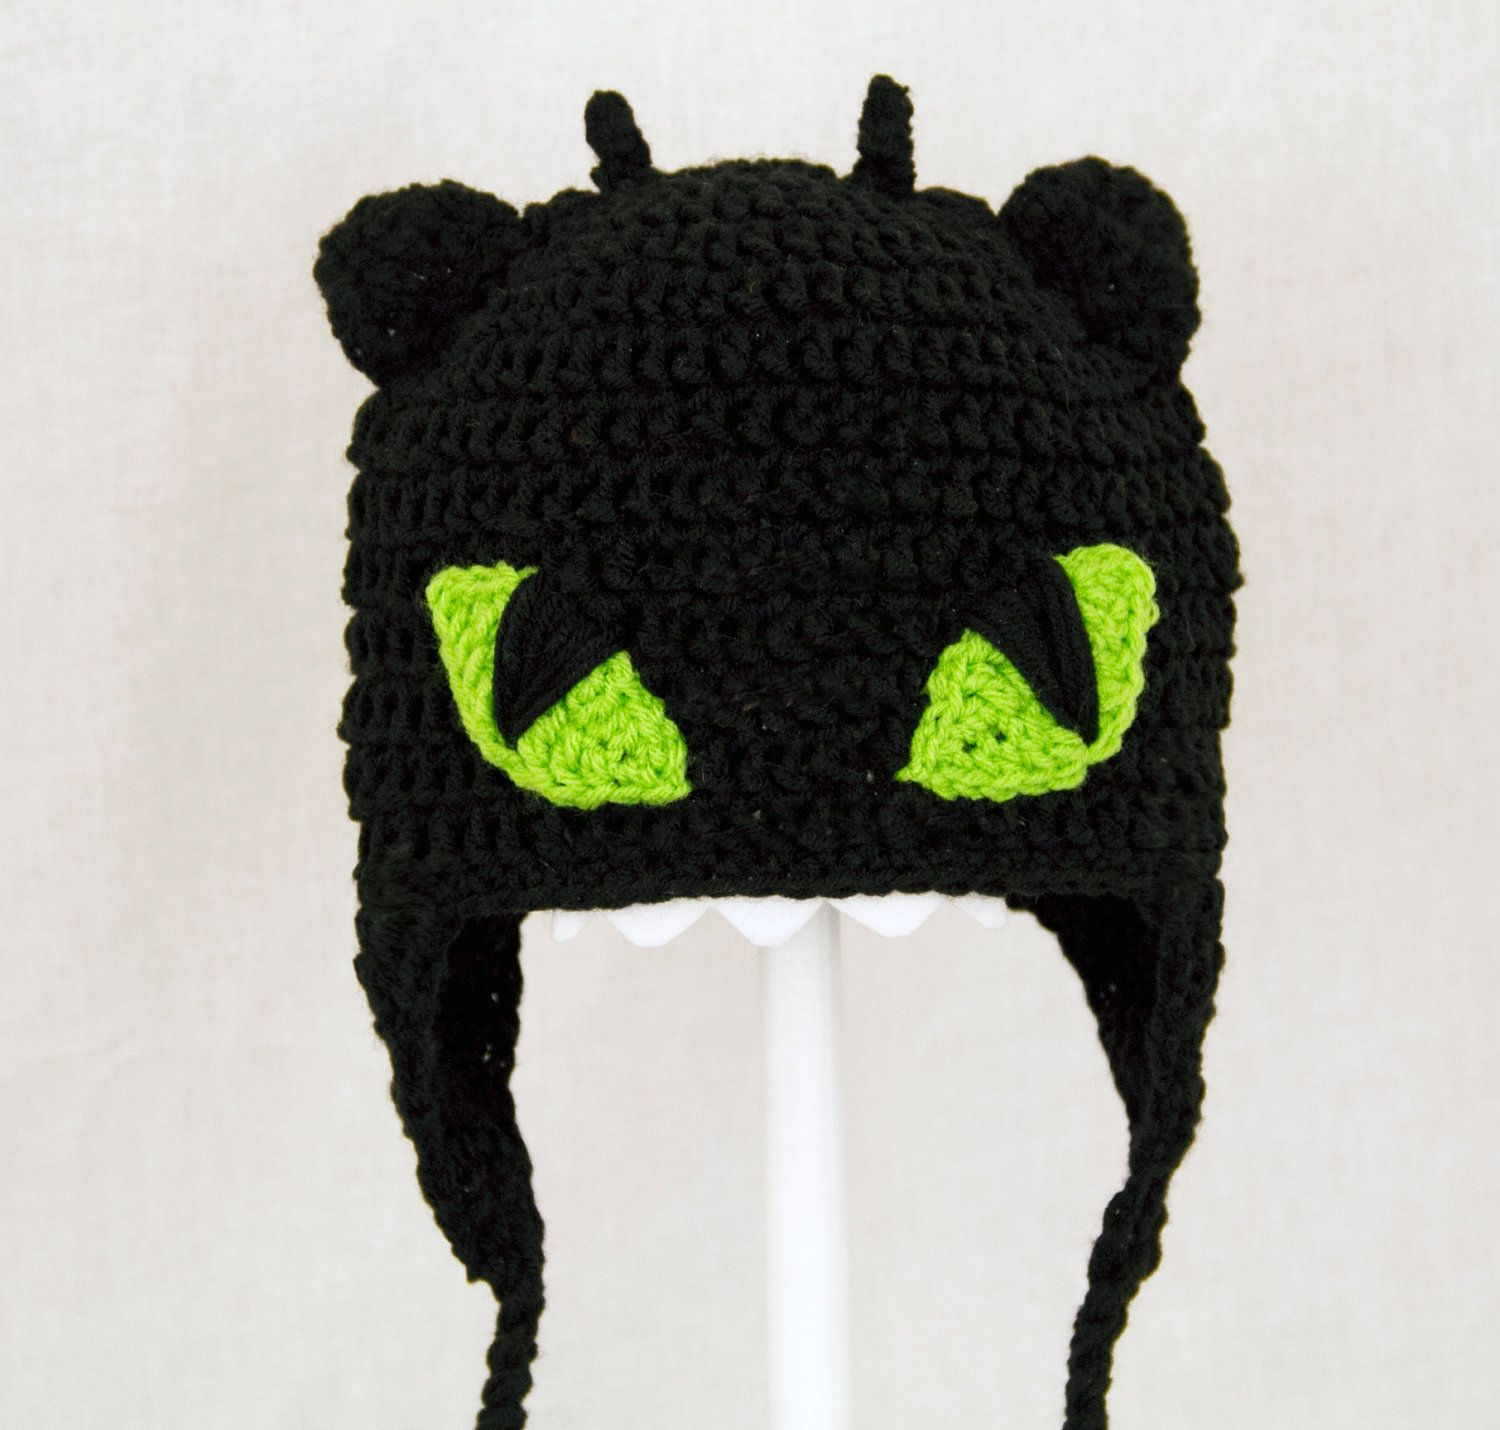 Toothless the Nightfury Earflap Hat from How to Train Your Dragon ...